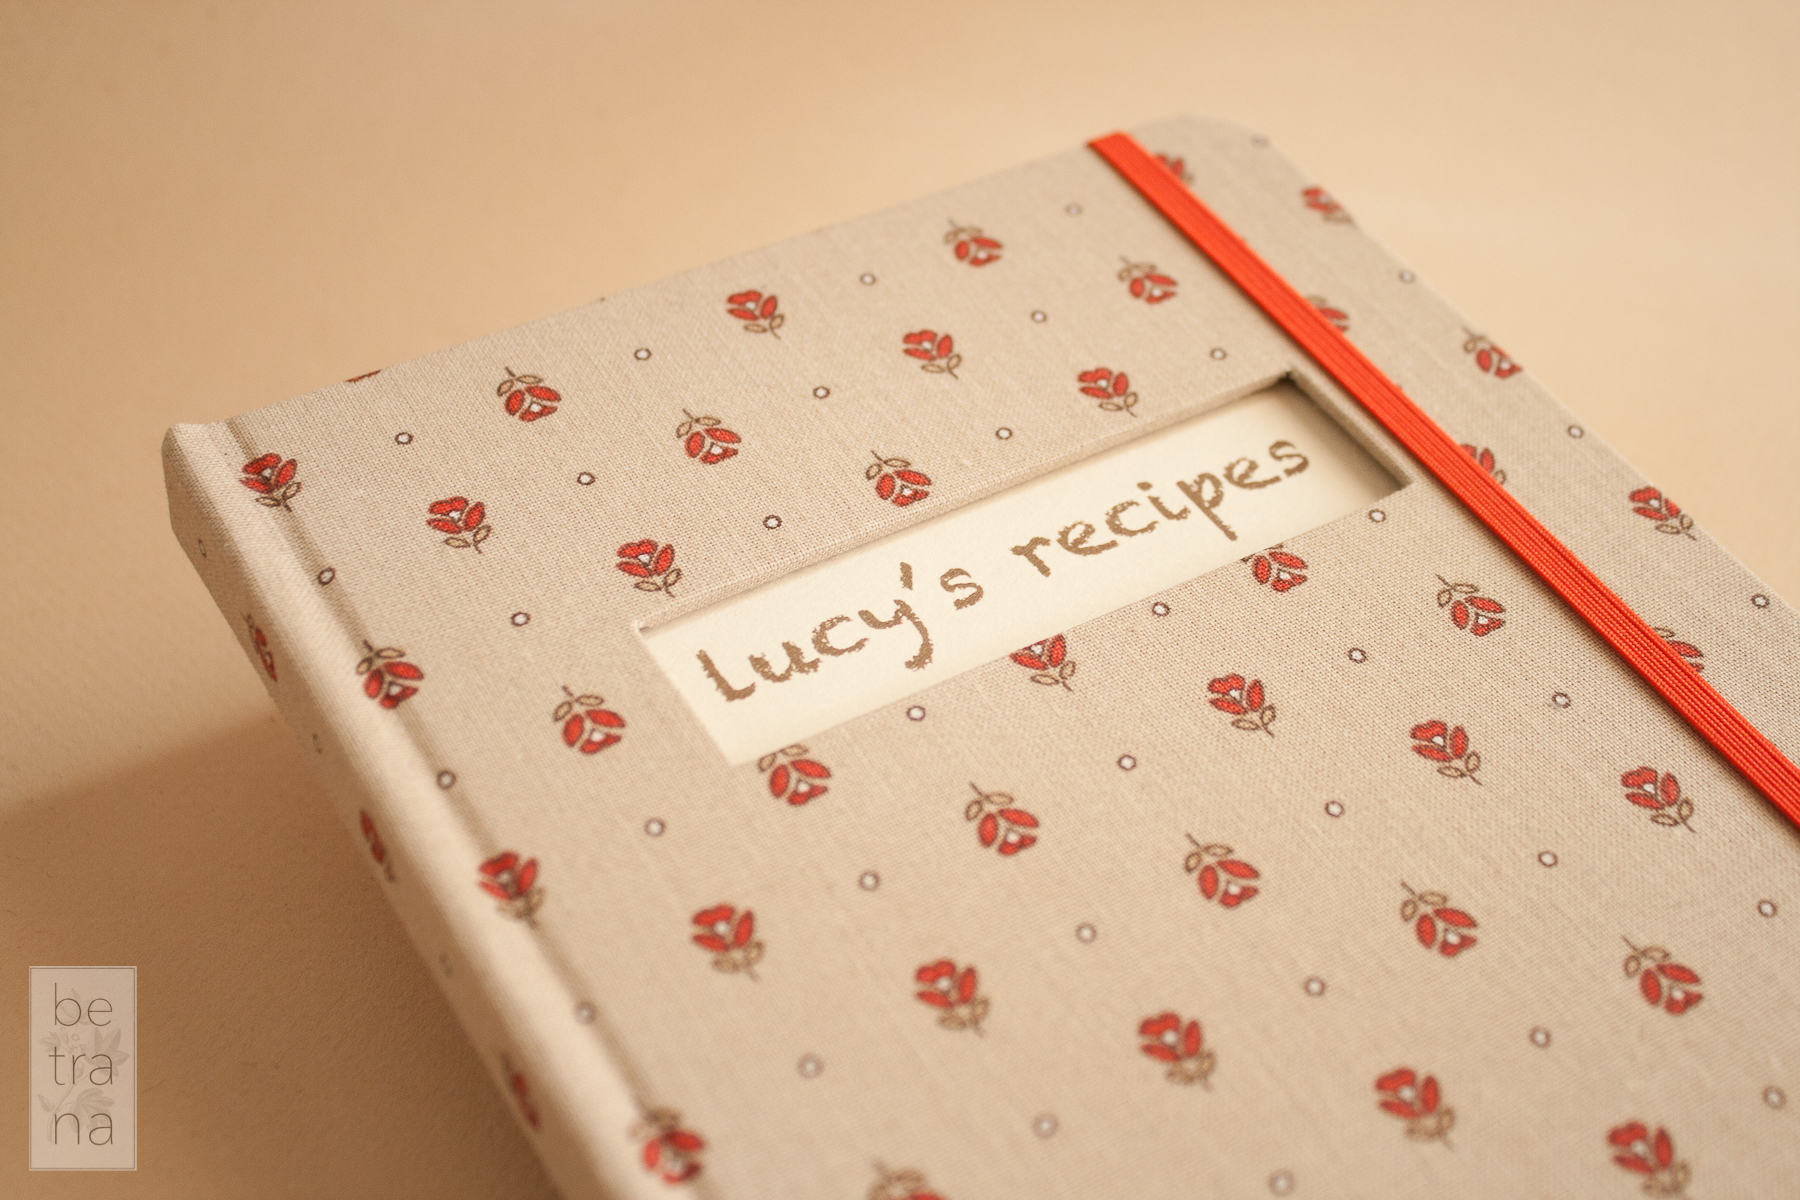 Lucys recipes Betrana  002